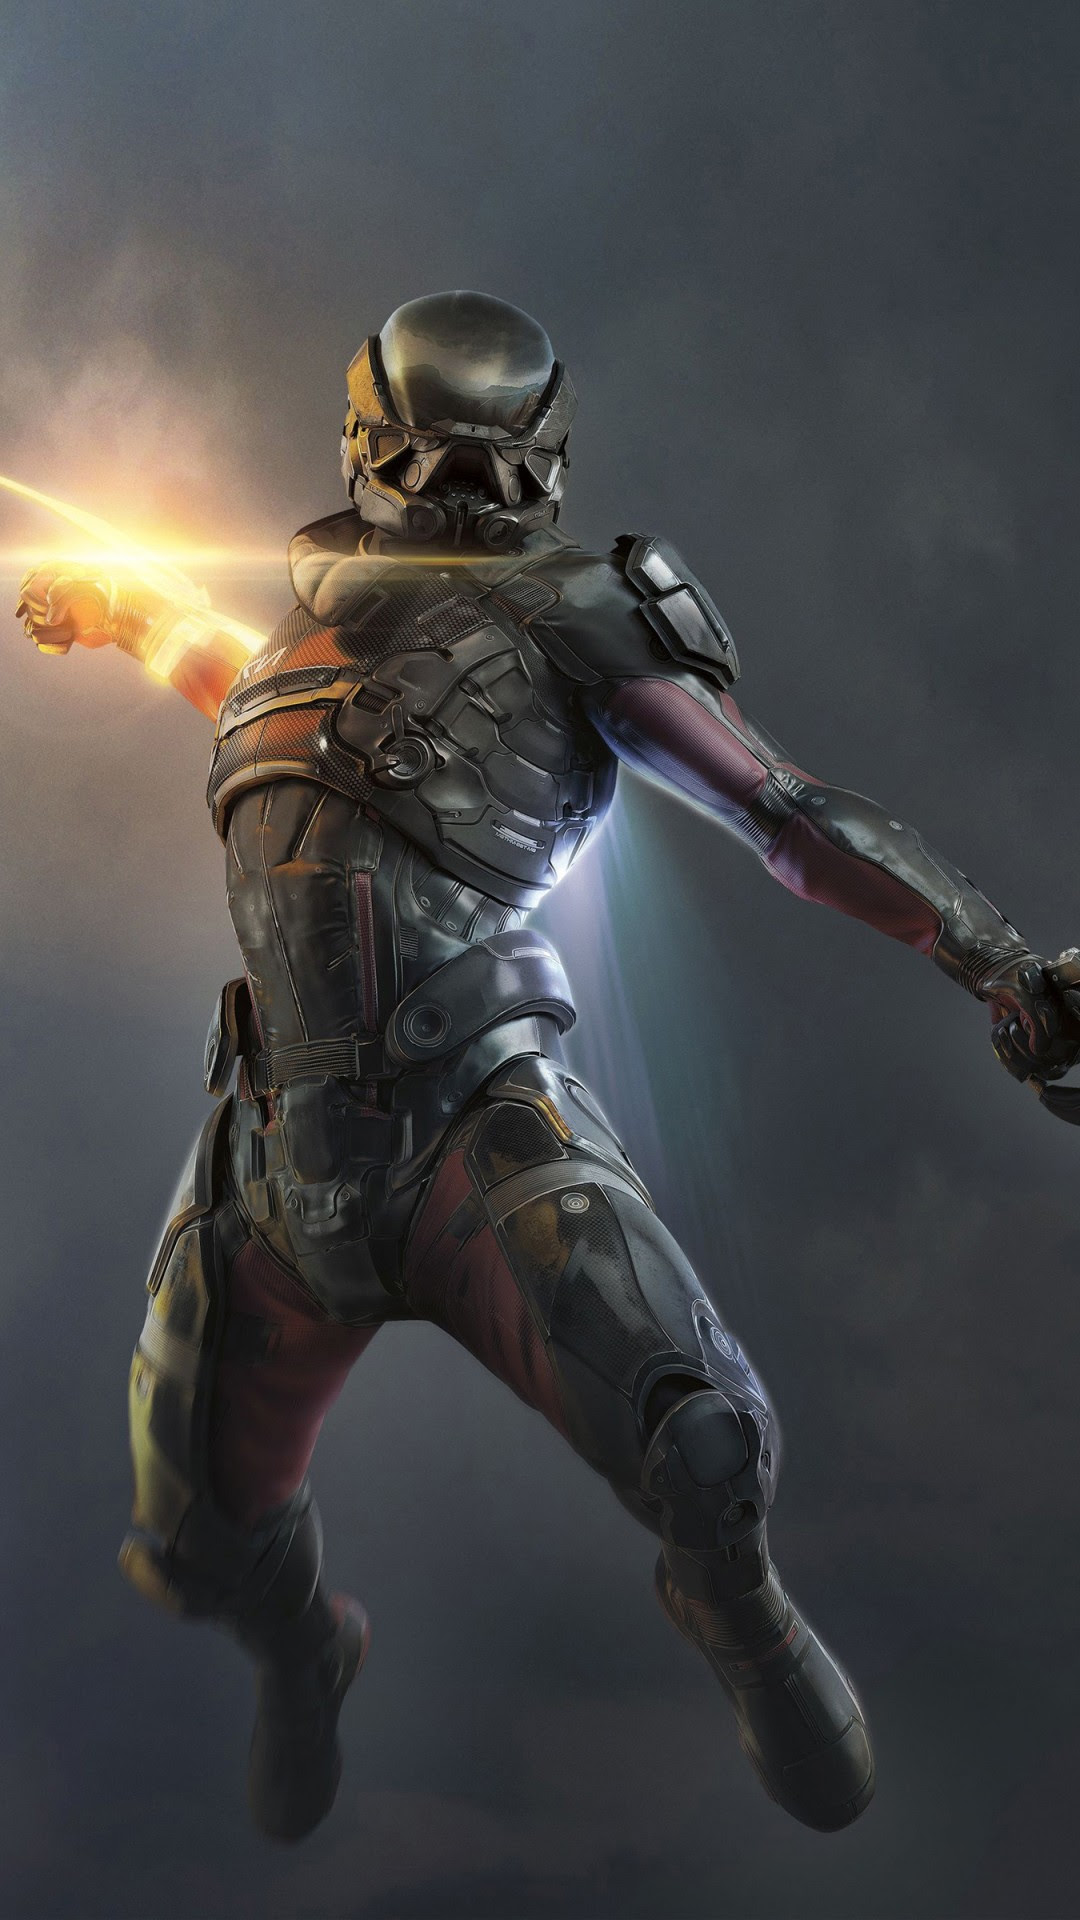 Mass Effect Andromeda 2016 Iphone 6 Plus Wallpaper The Hot